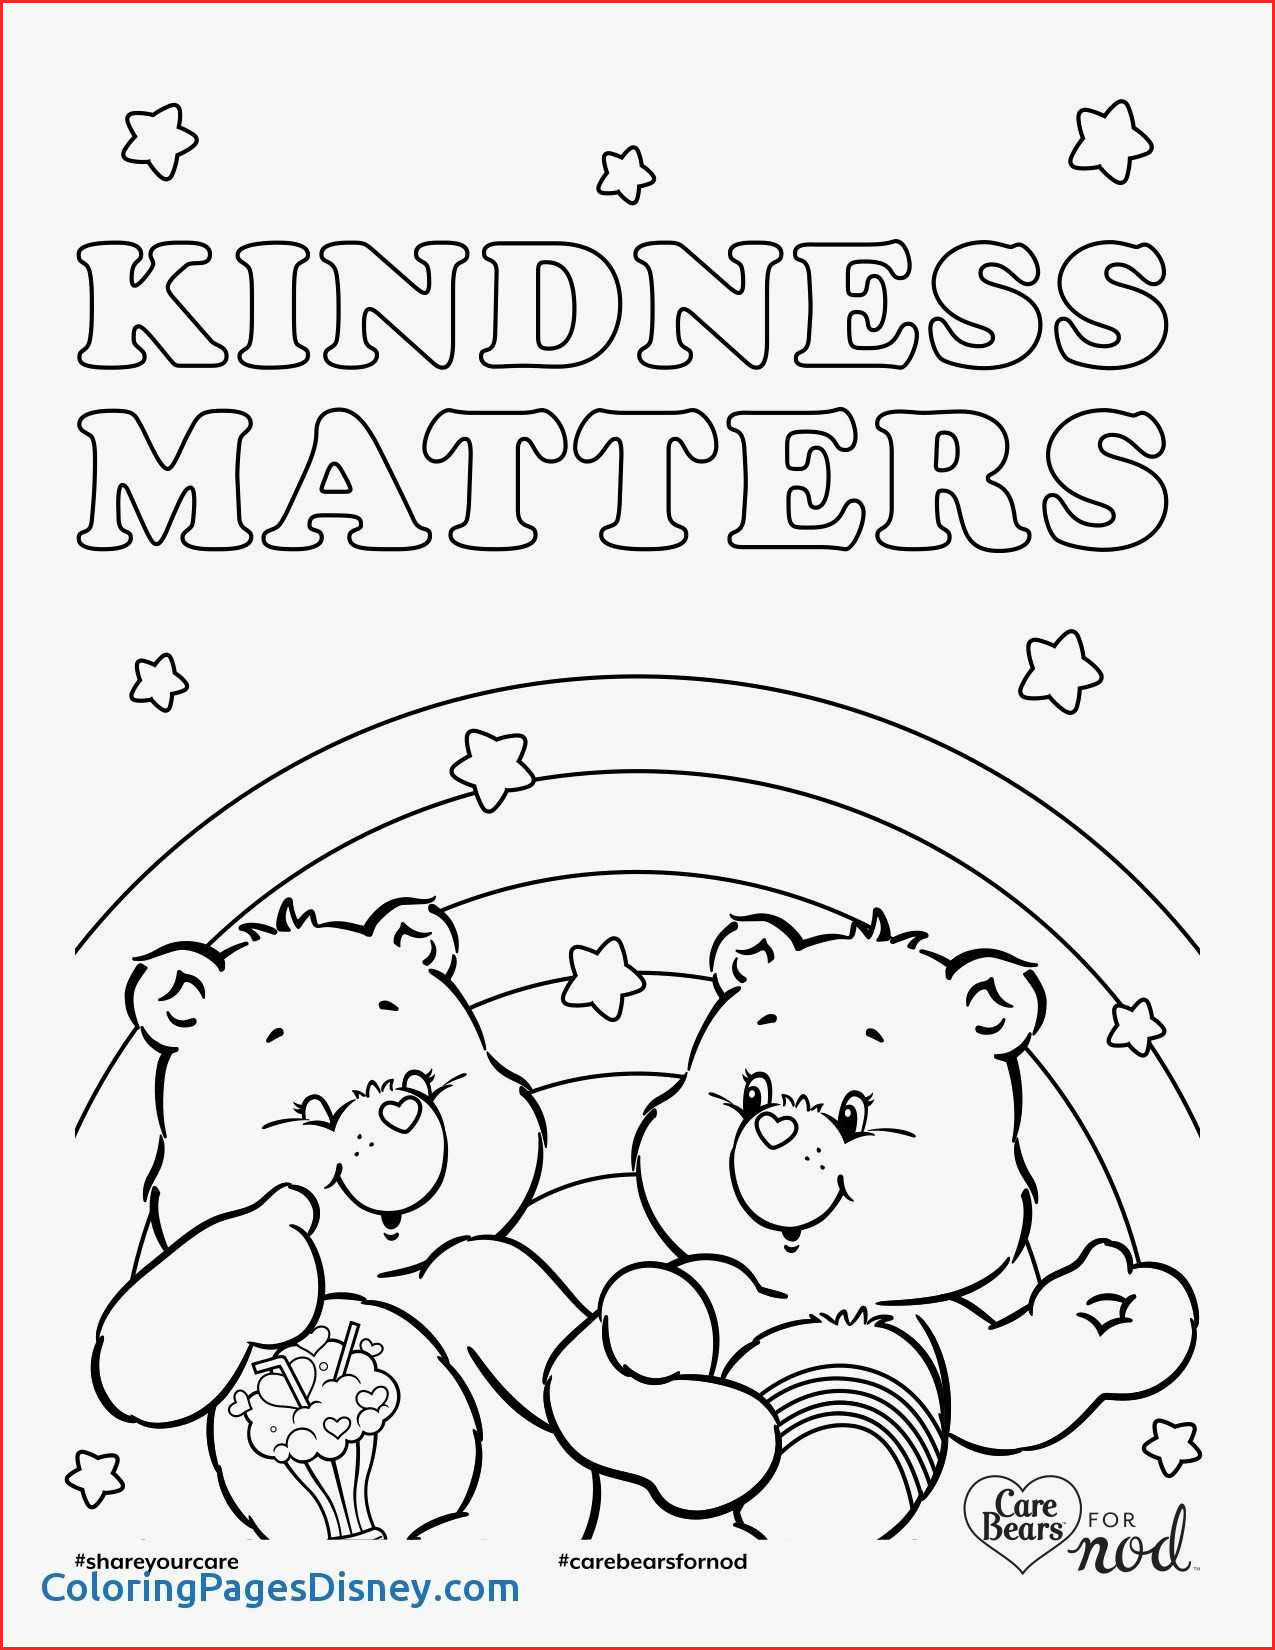 Disney Coloring Pages Free Disney Adult Coloring Awesome Stock Free Printable Coloring Pages